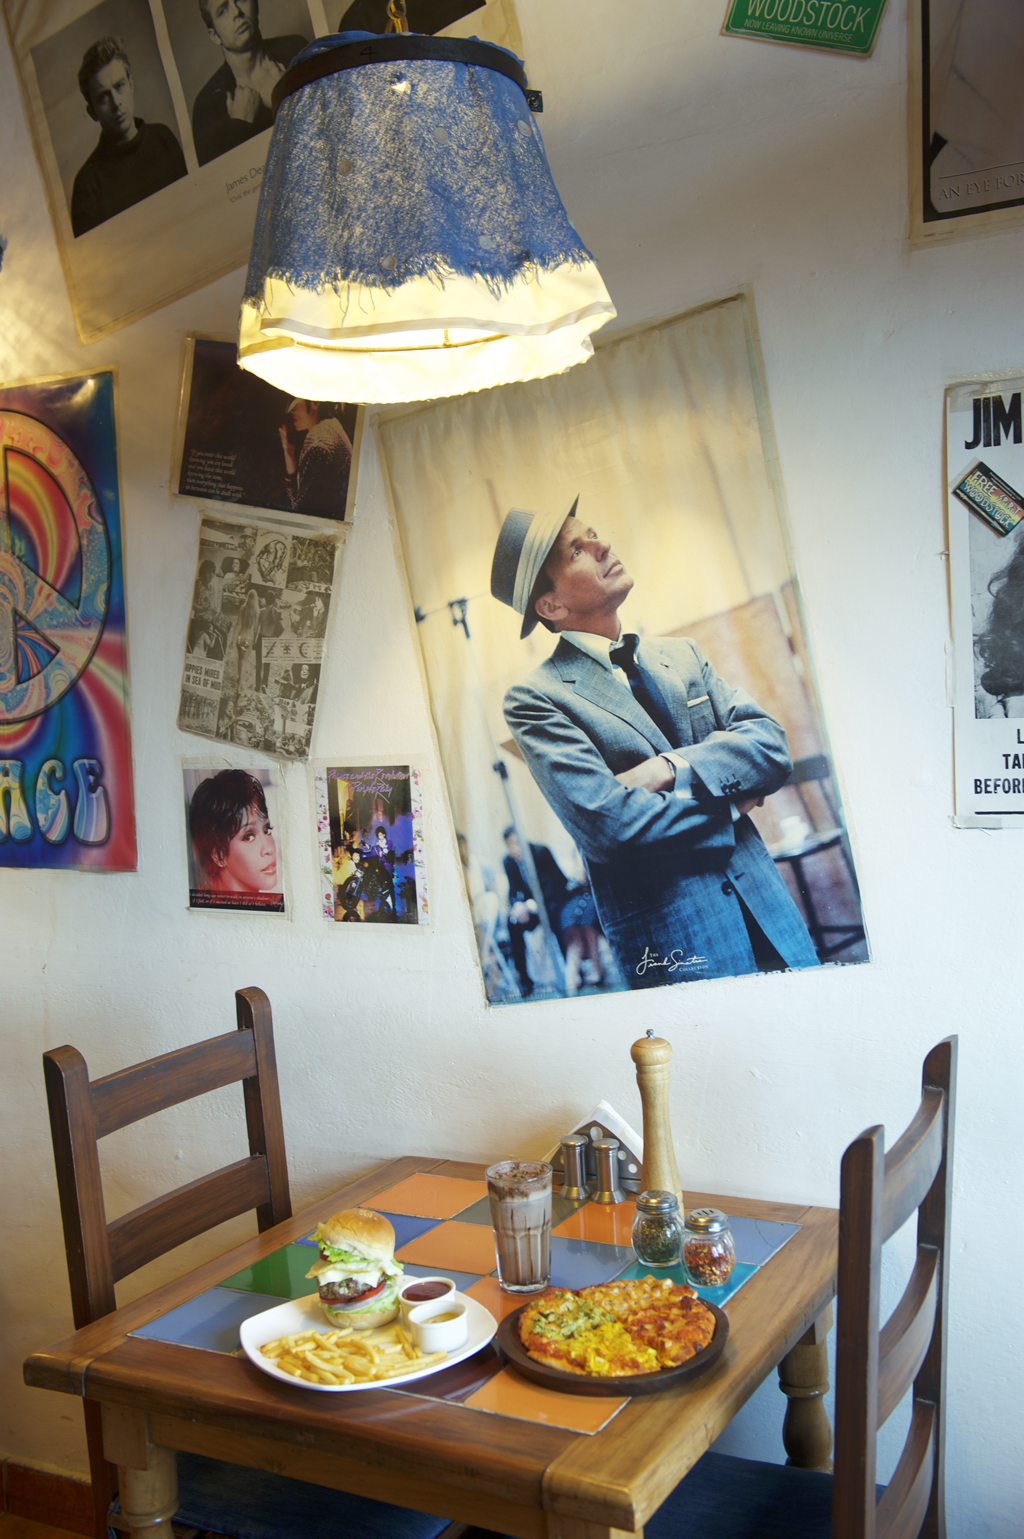 Pizza and posters at Clock Tower Cafe